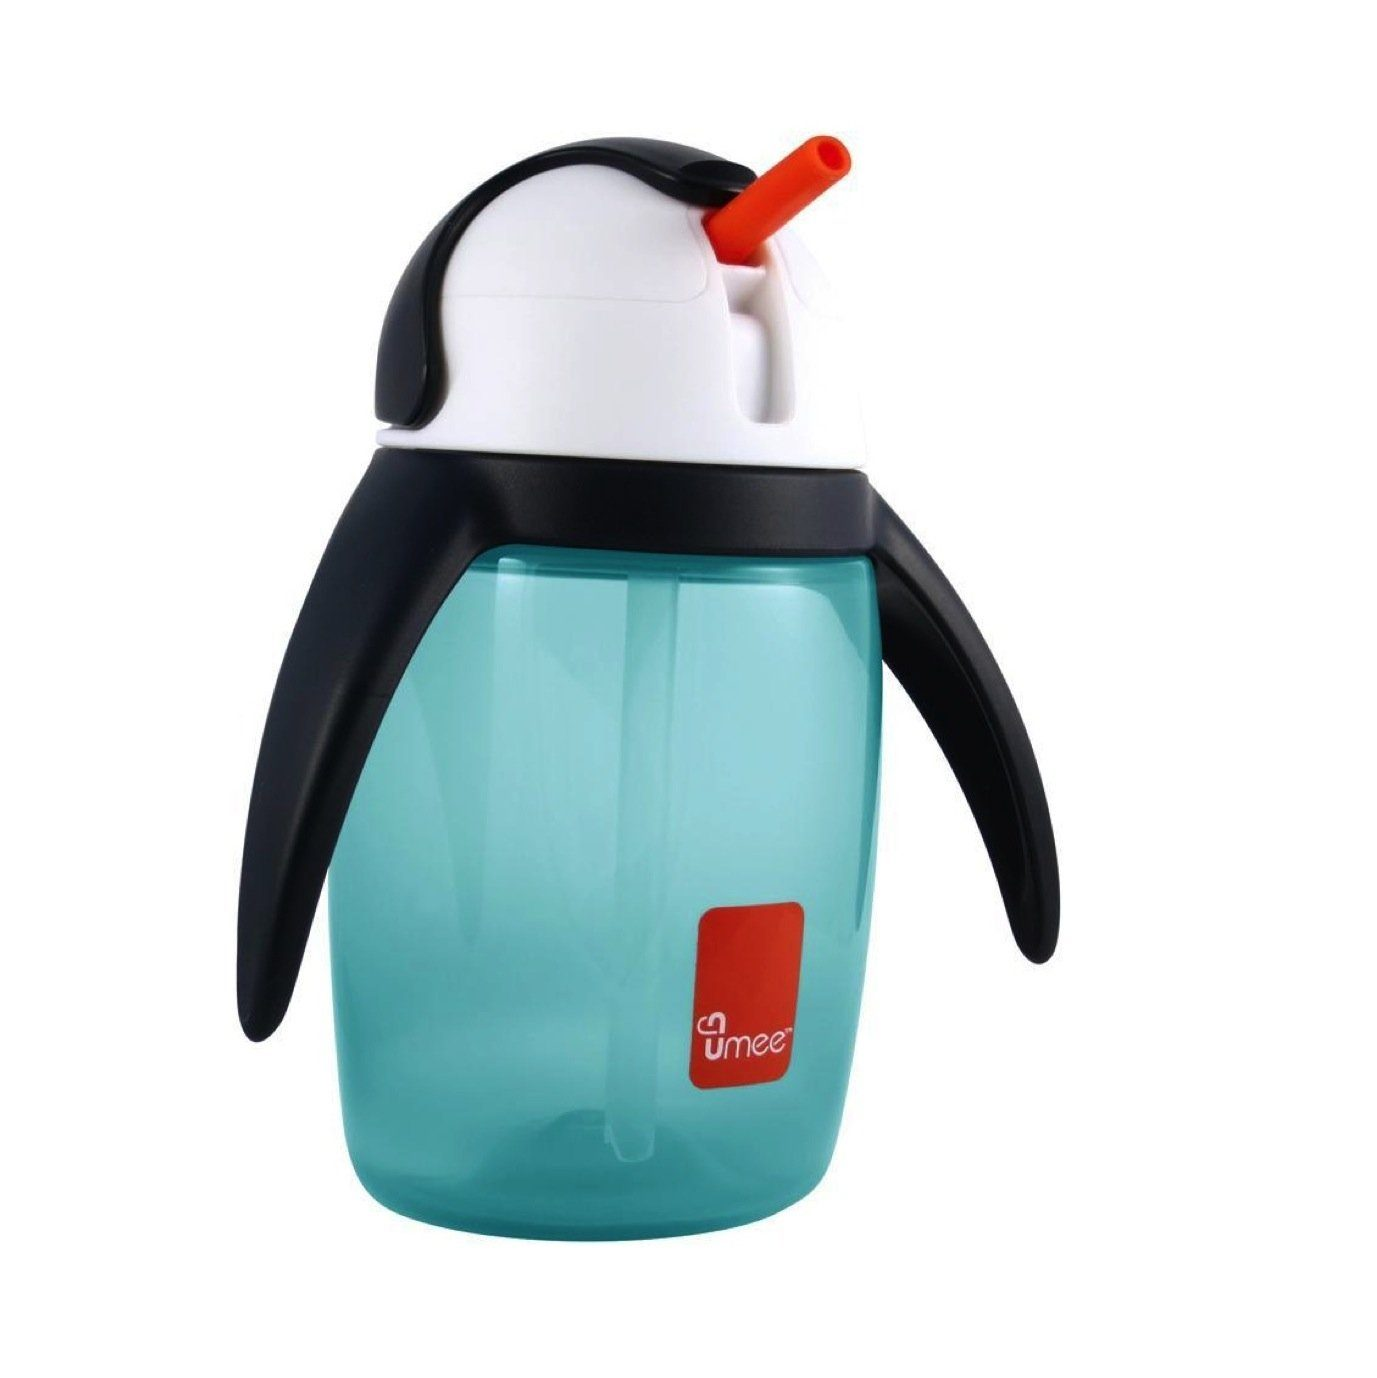 Umee U Cool straw cup, Penguin Cup 360ml (Blue)